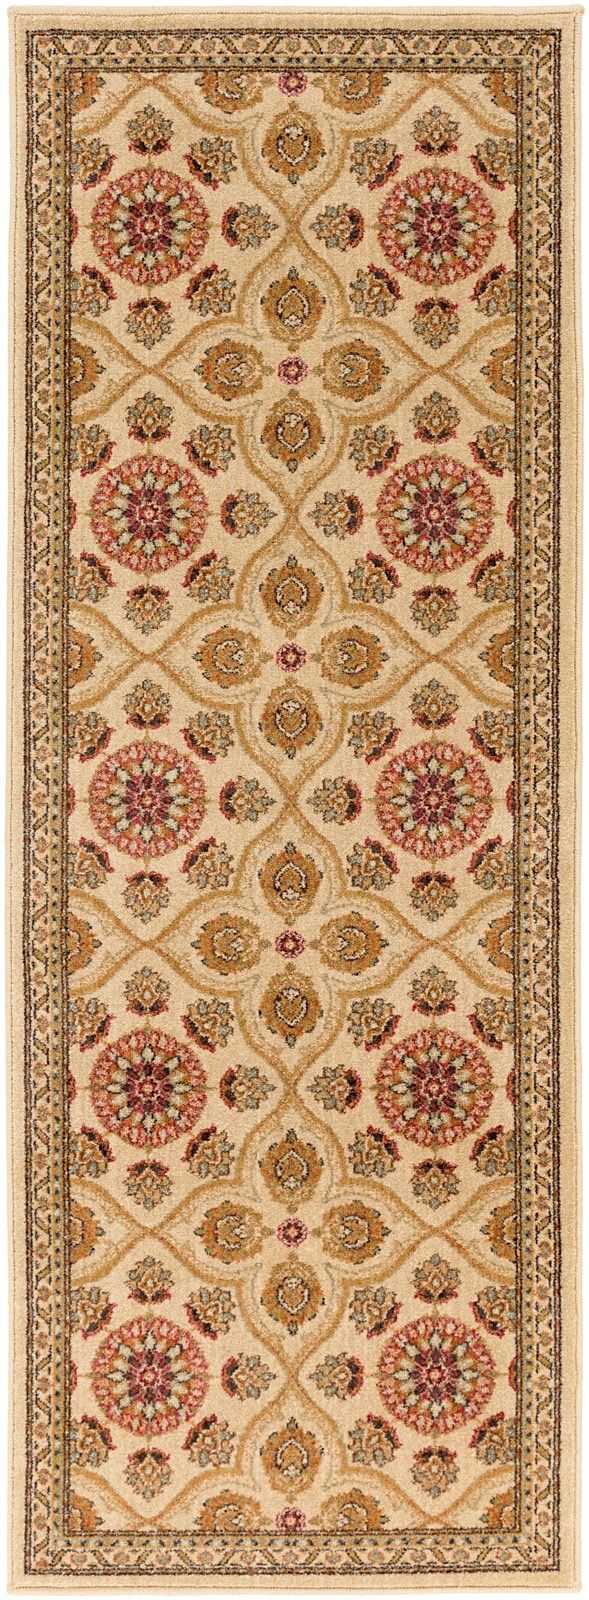 surya hathaway contemporary area rug collection